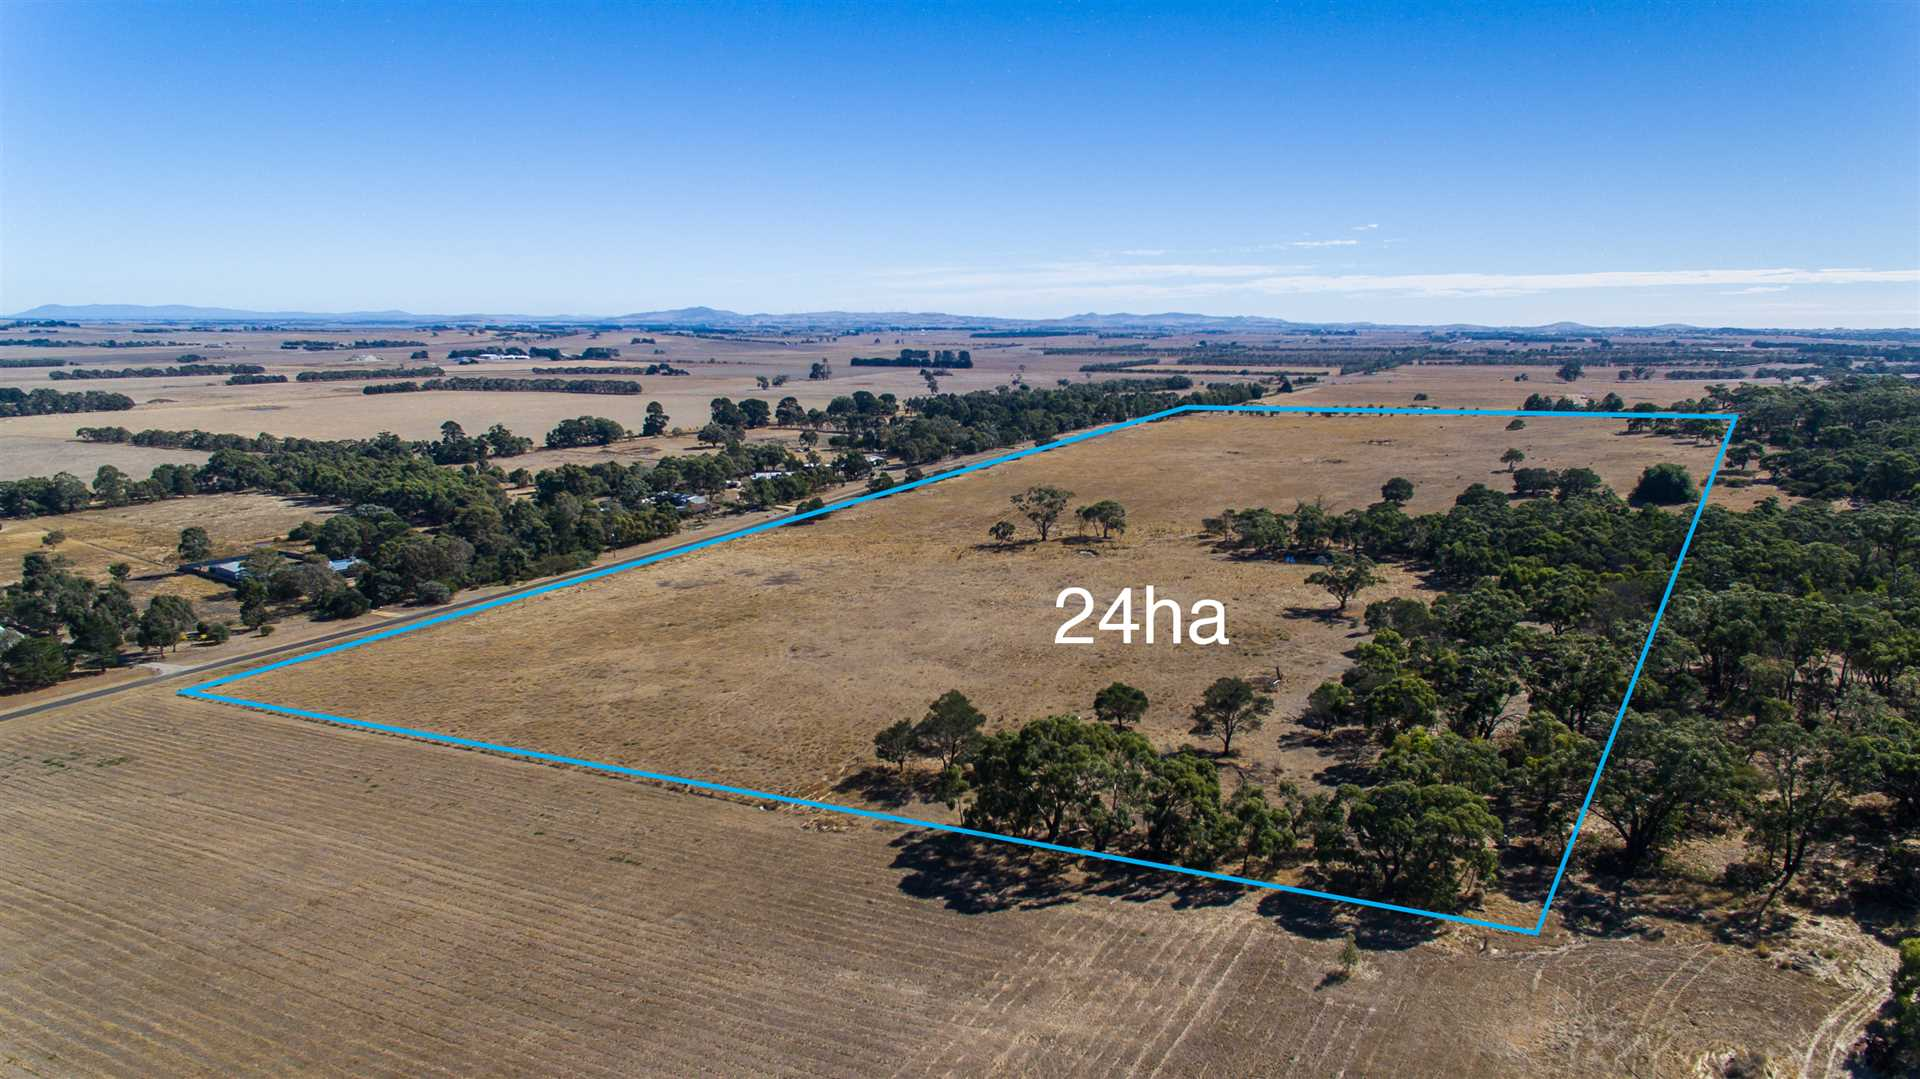 60 Acres On The Cusp of Ballarat With Building Approval